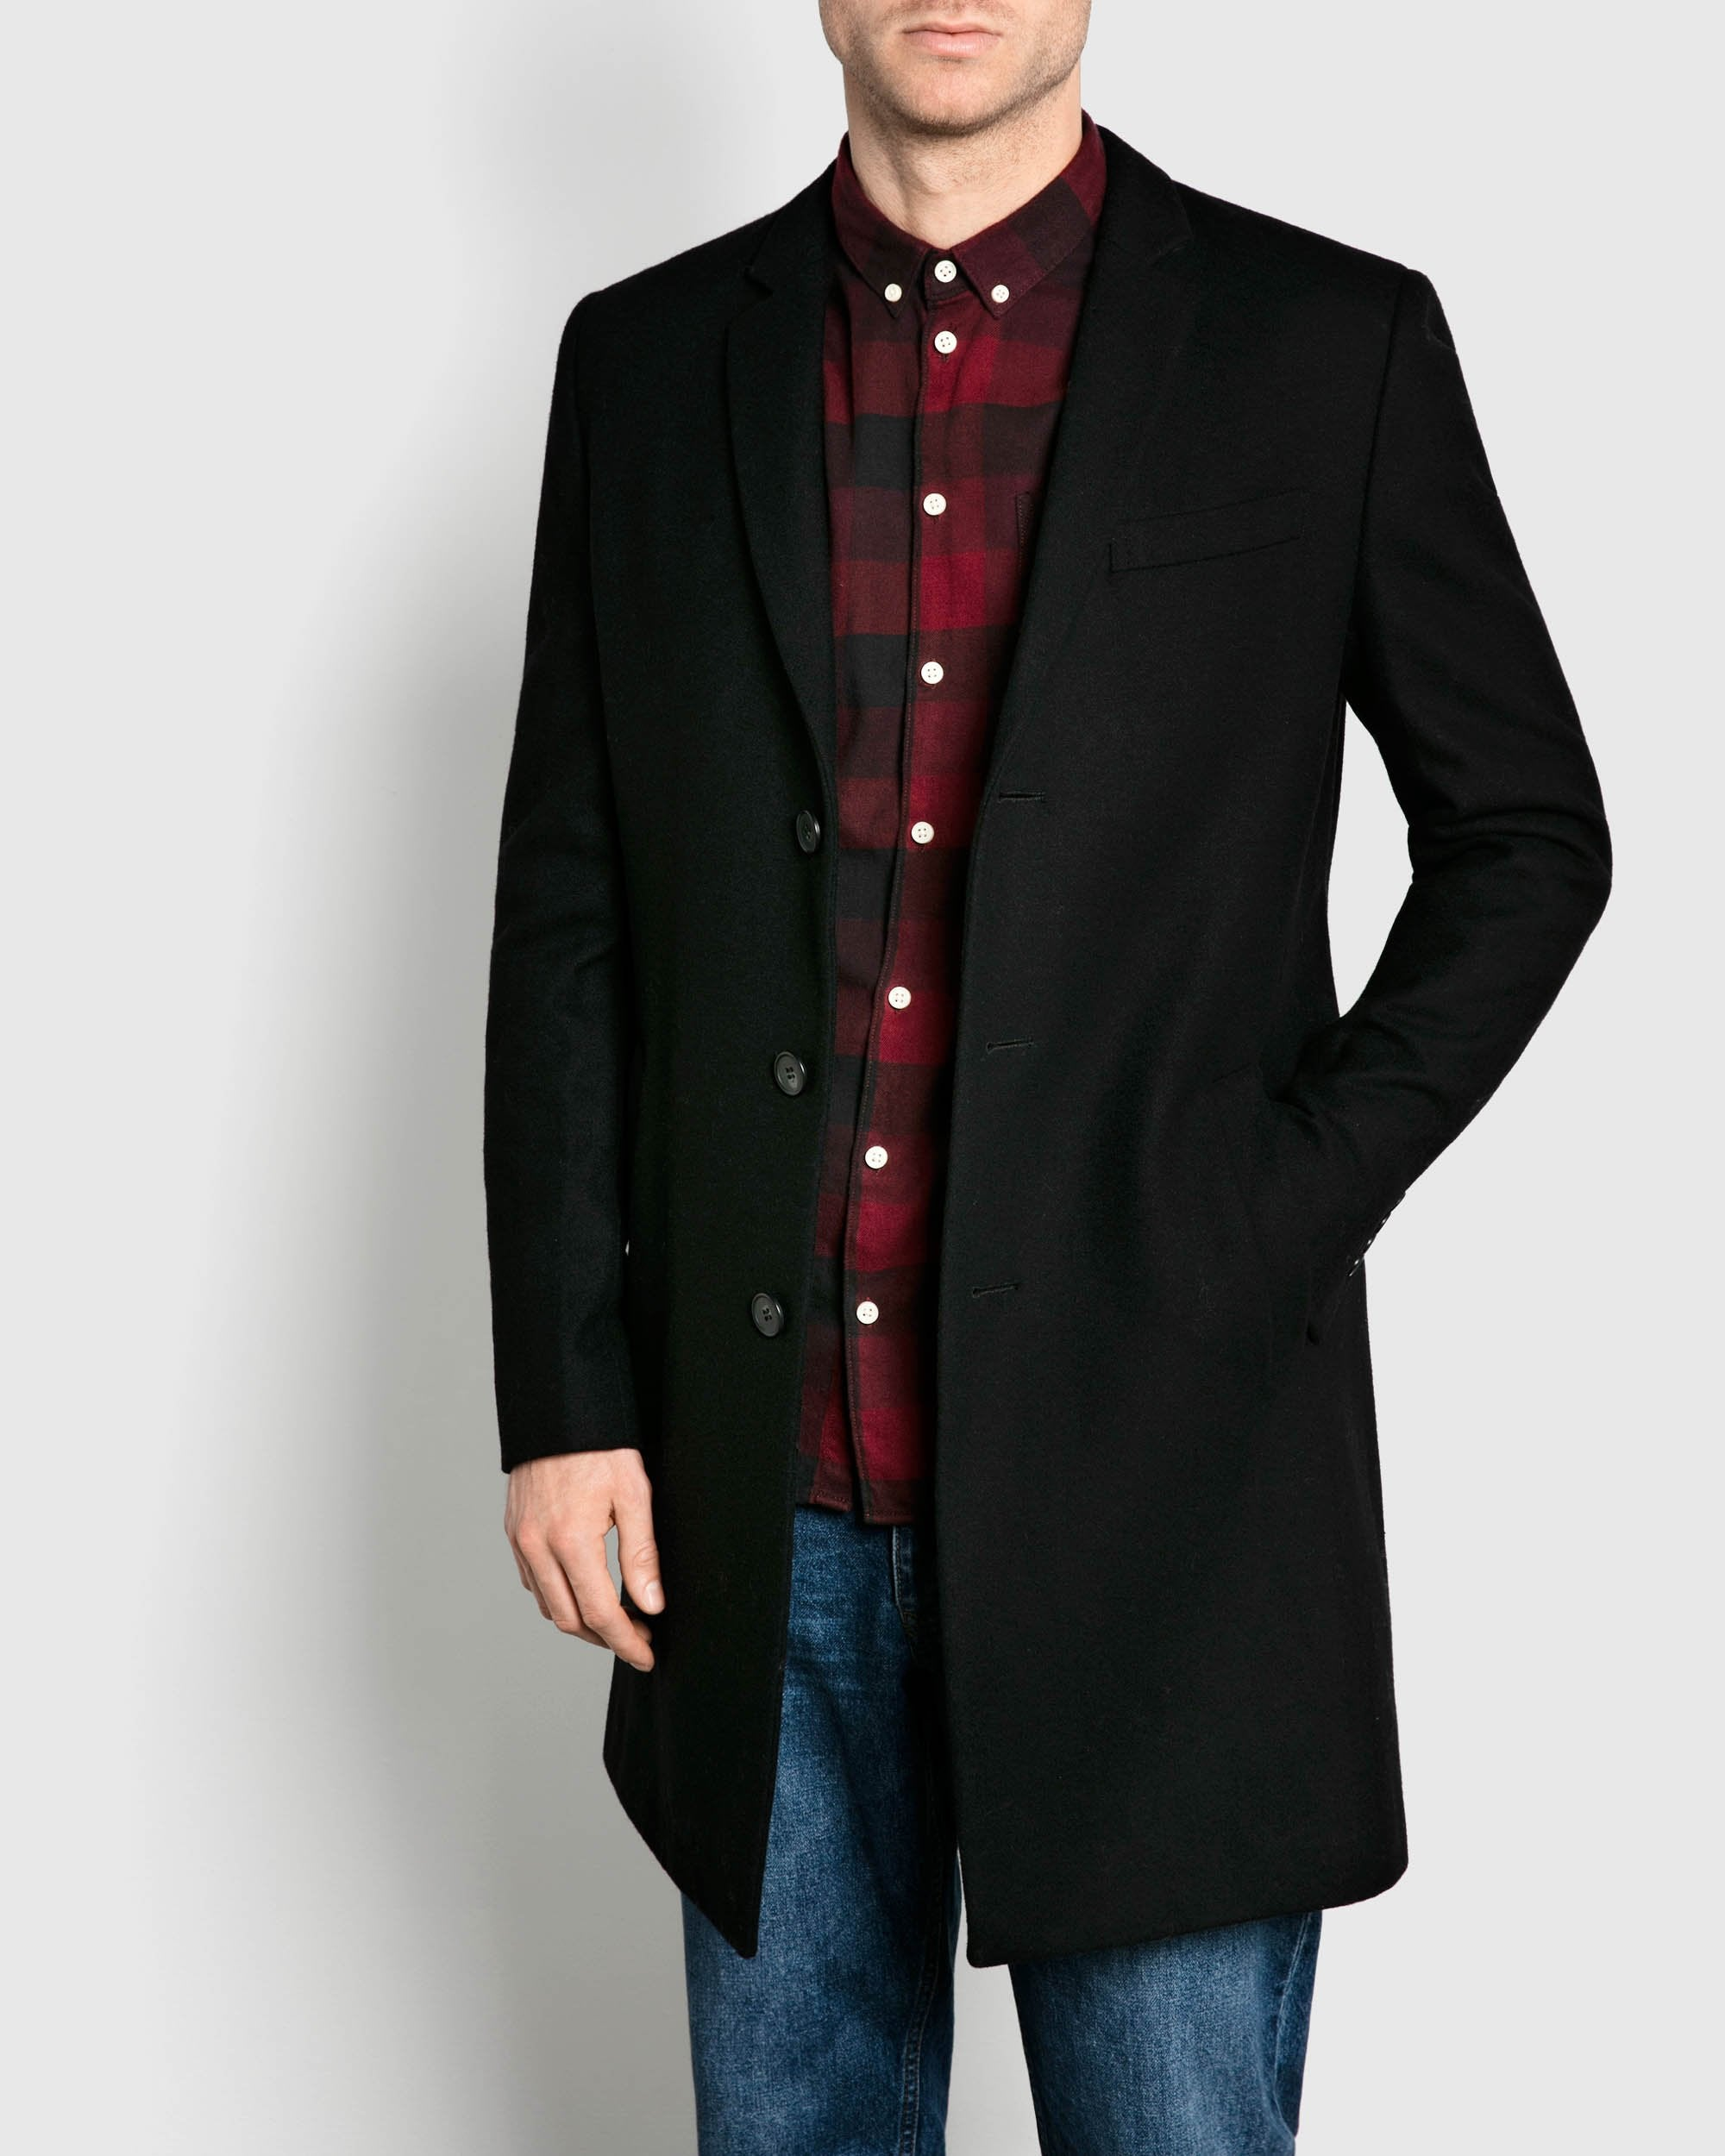 MINIMUM GLEASON  6001 OUTERWEAR BLACK LINE